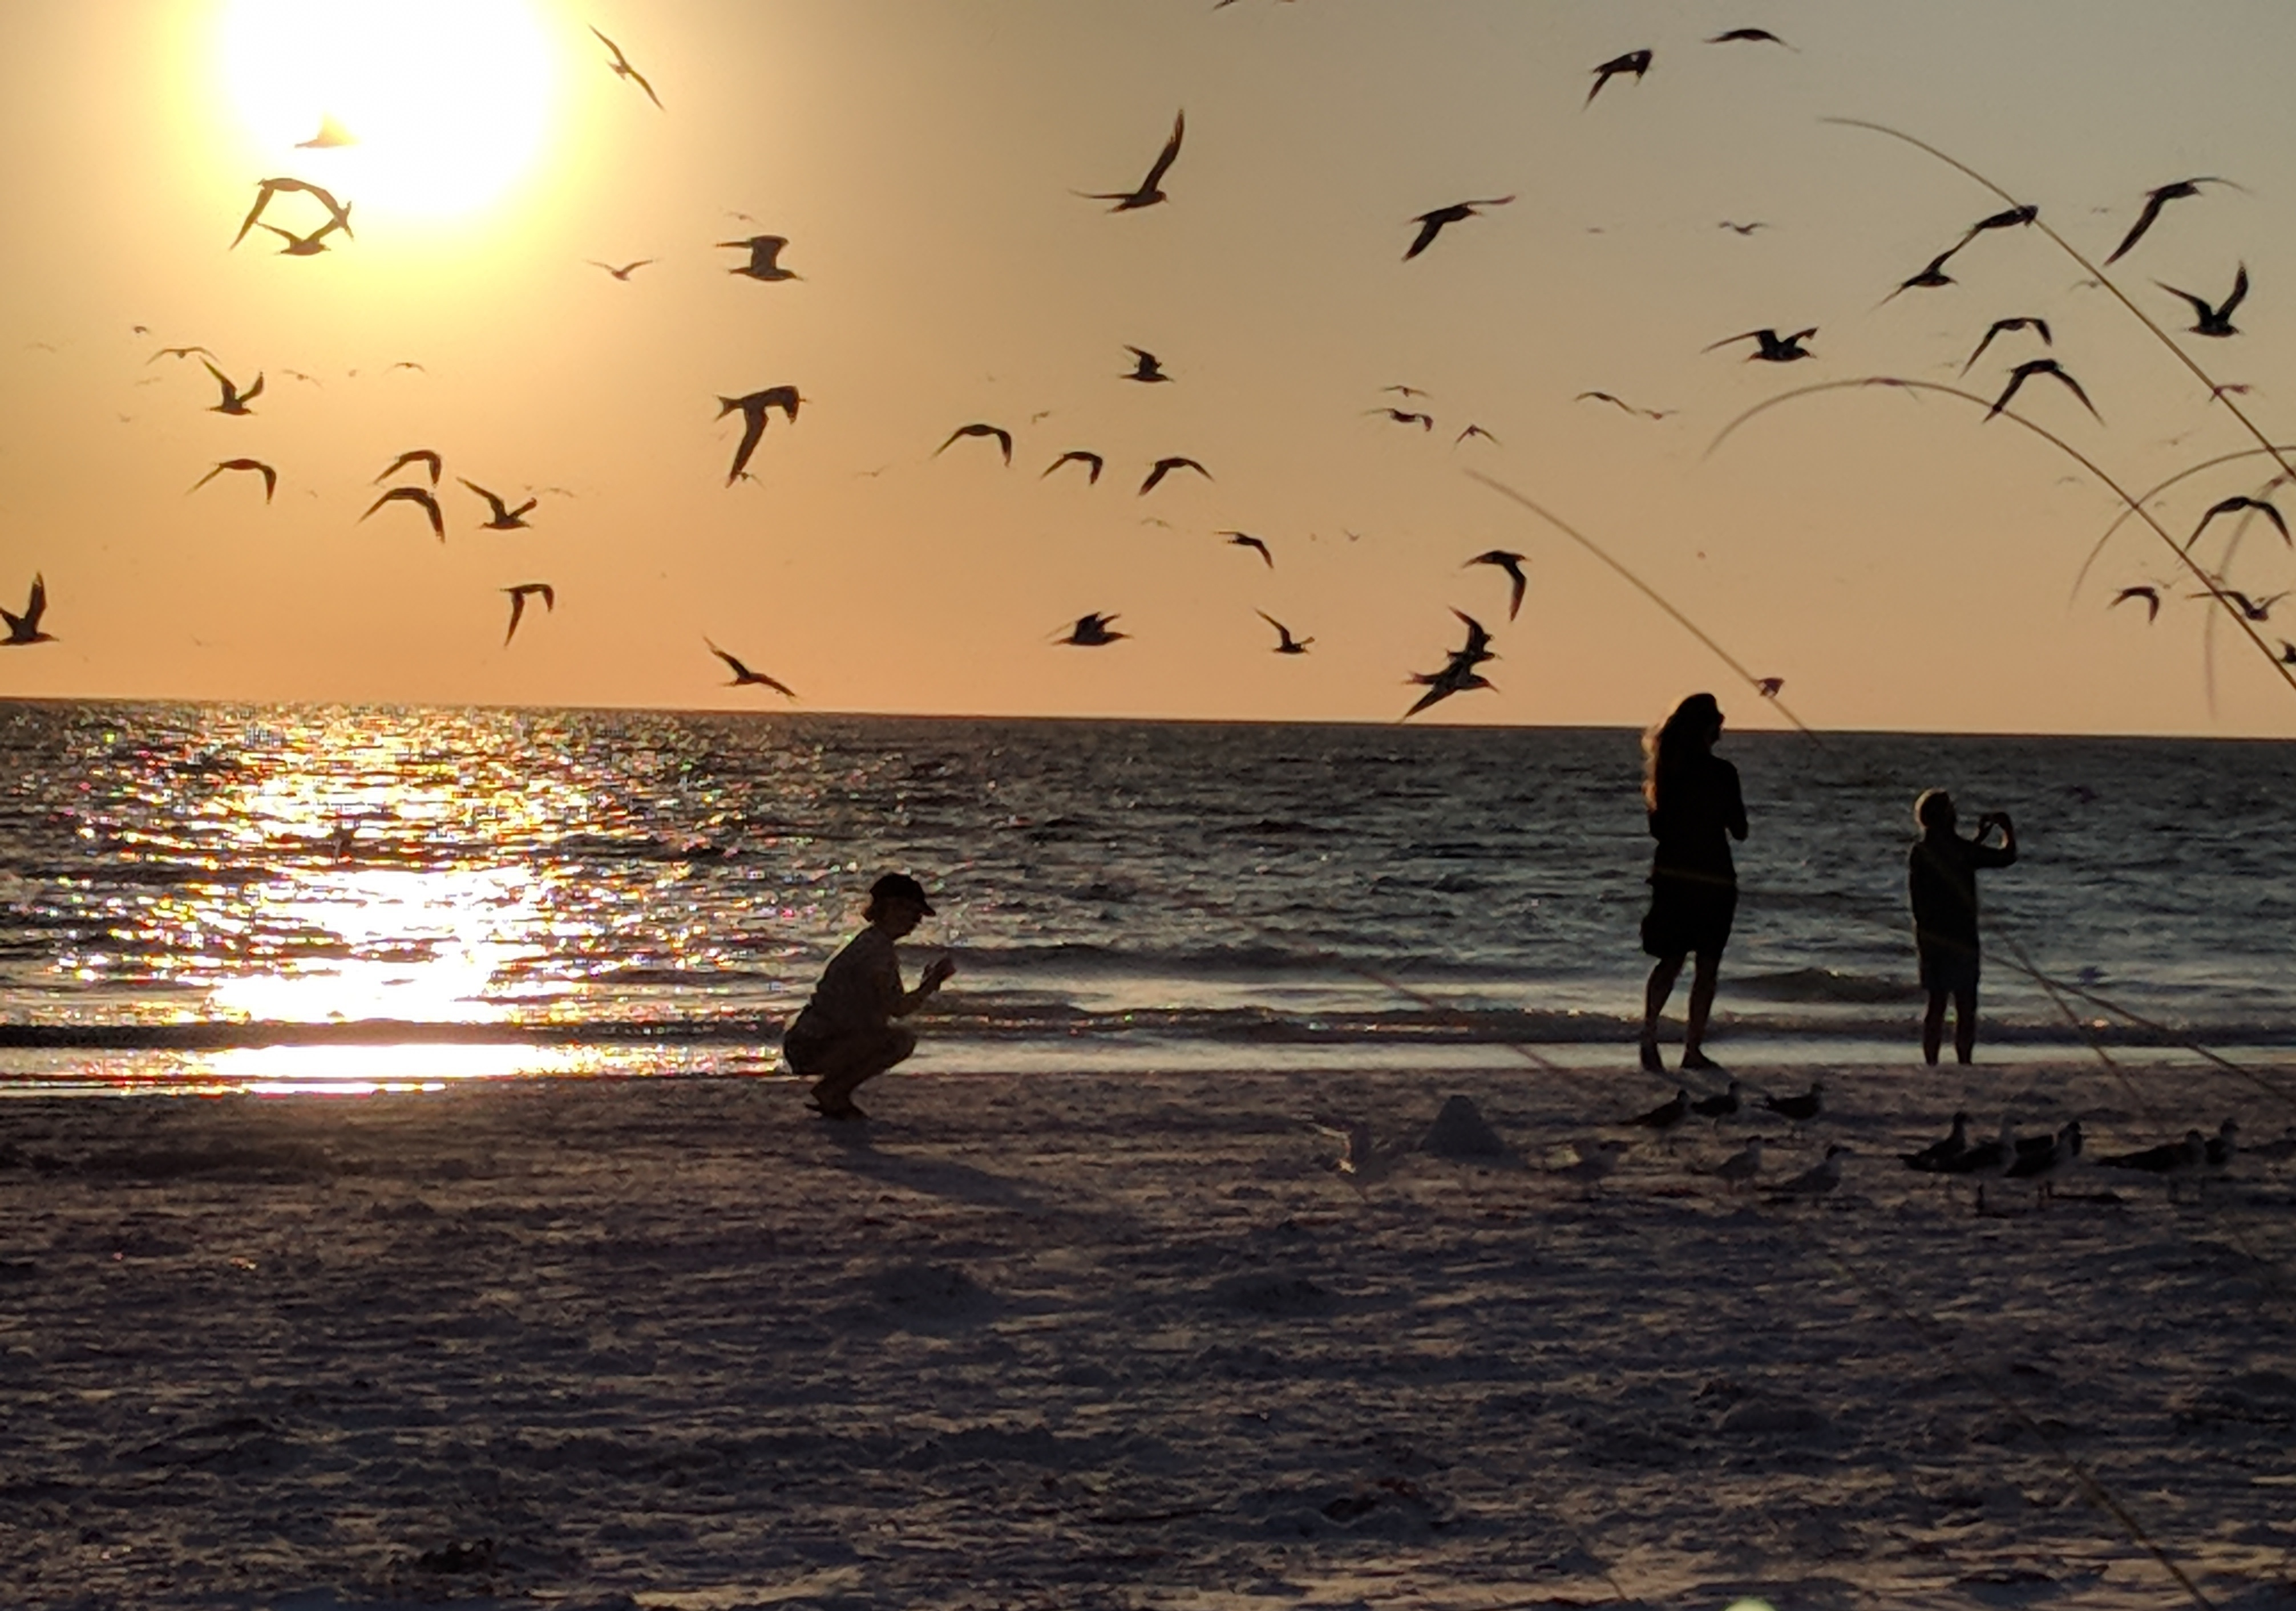 Two women stand on the sand of gulf coast with sun setting over the water as seagulls fly overhead